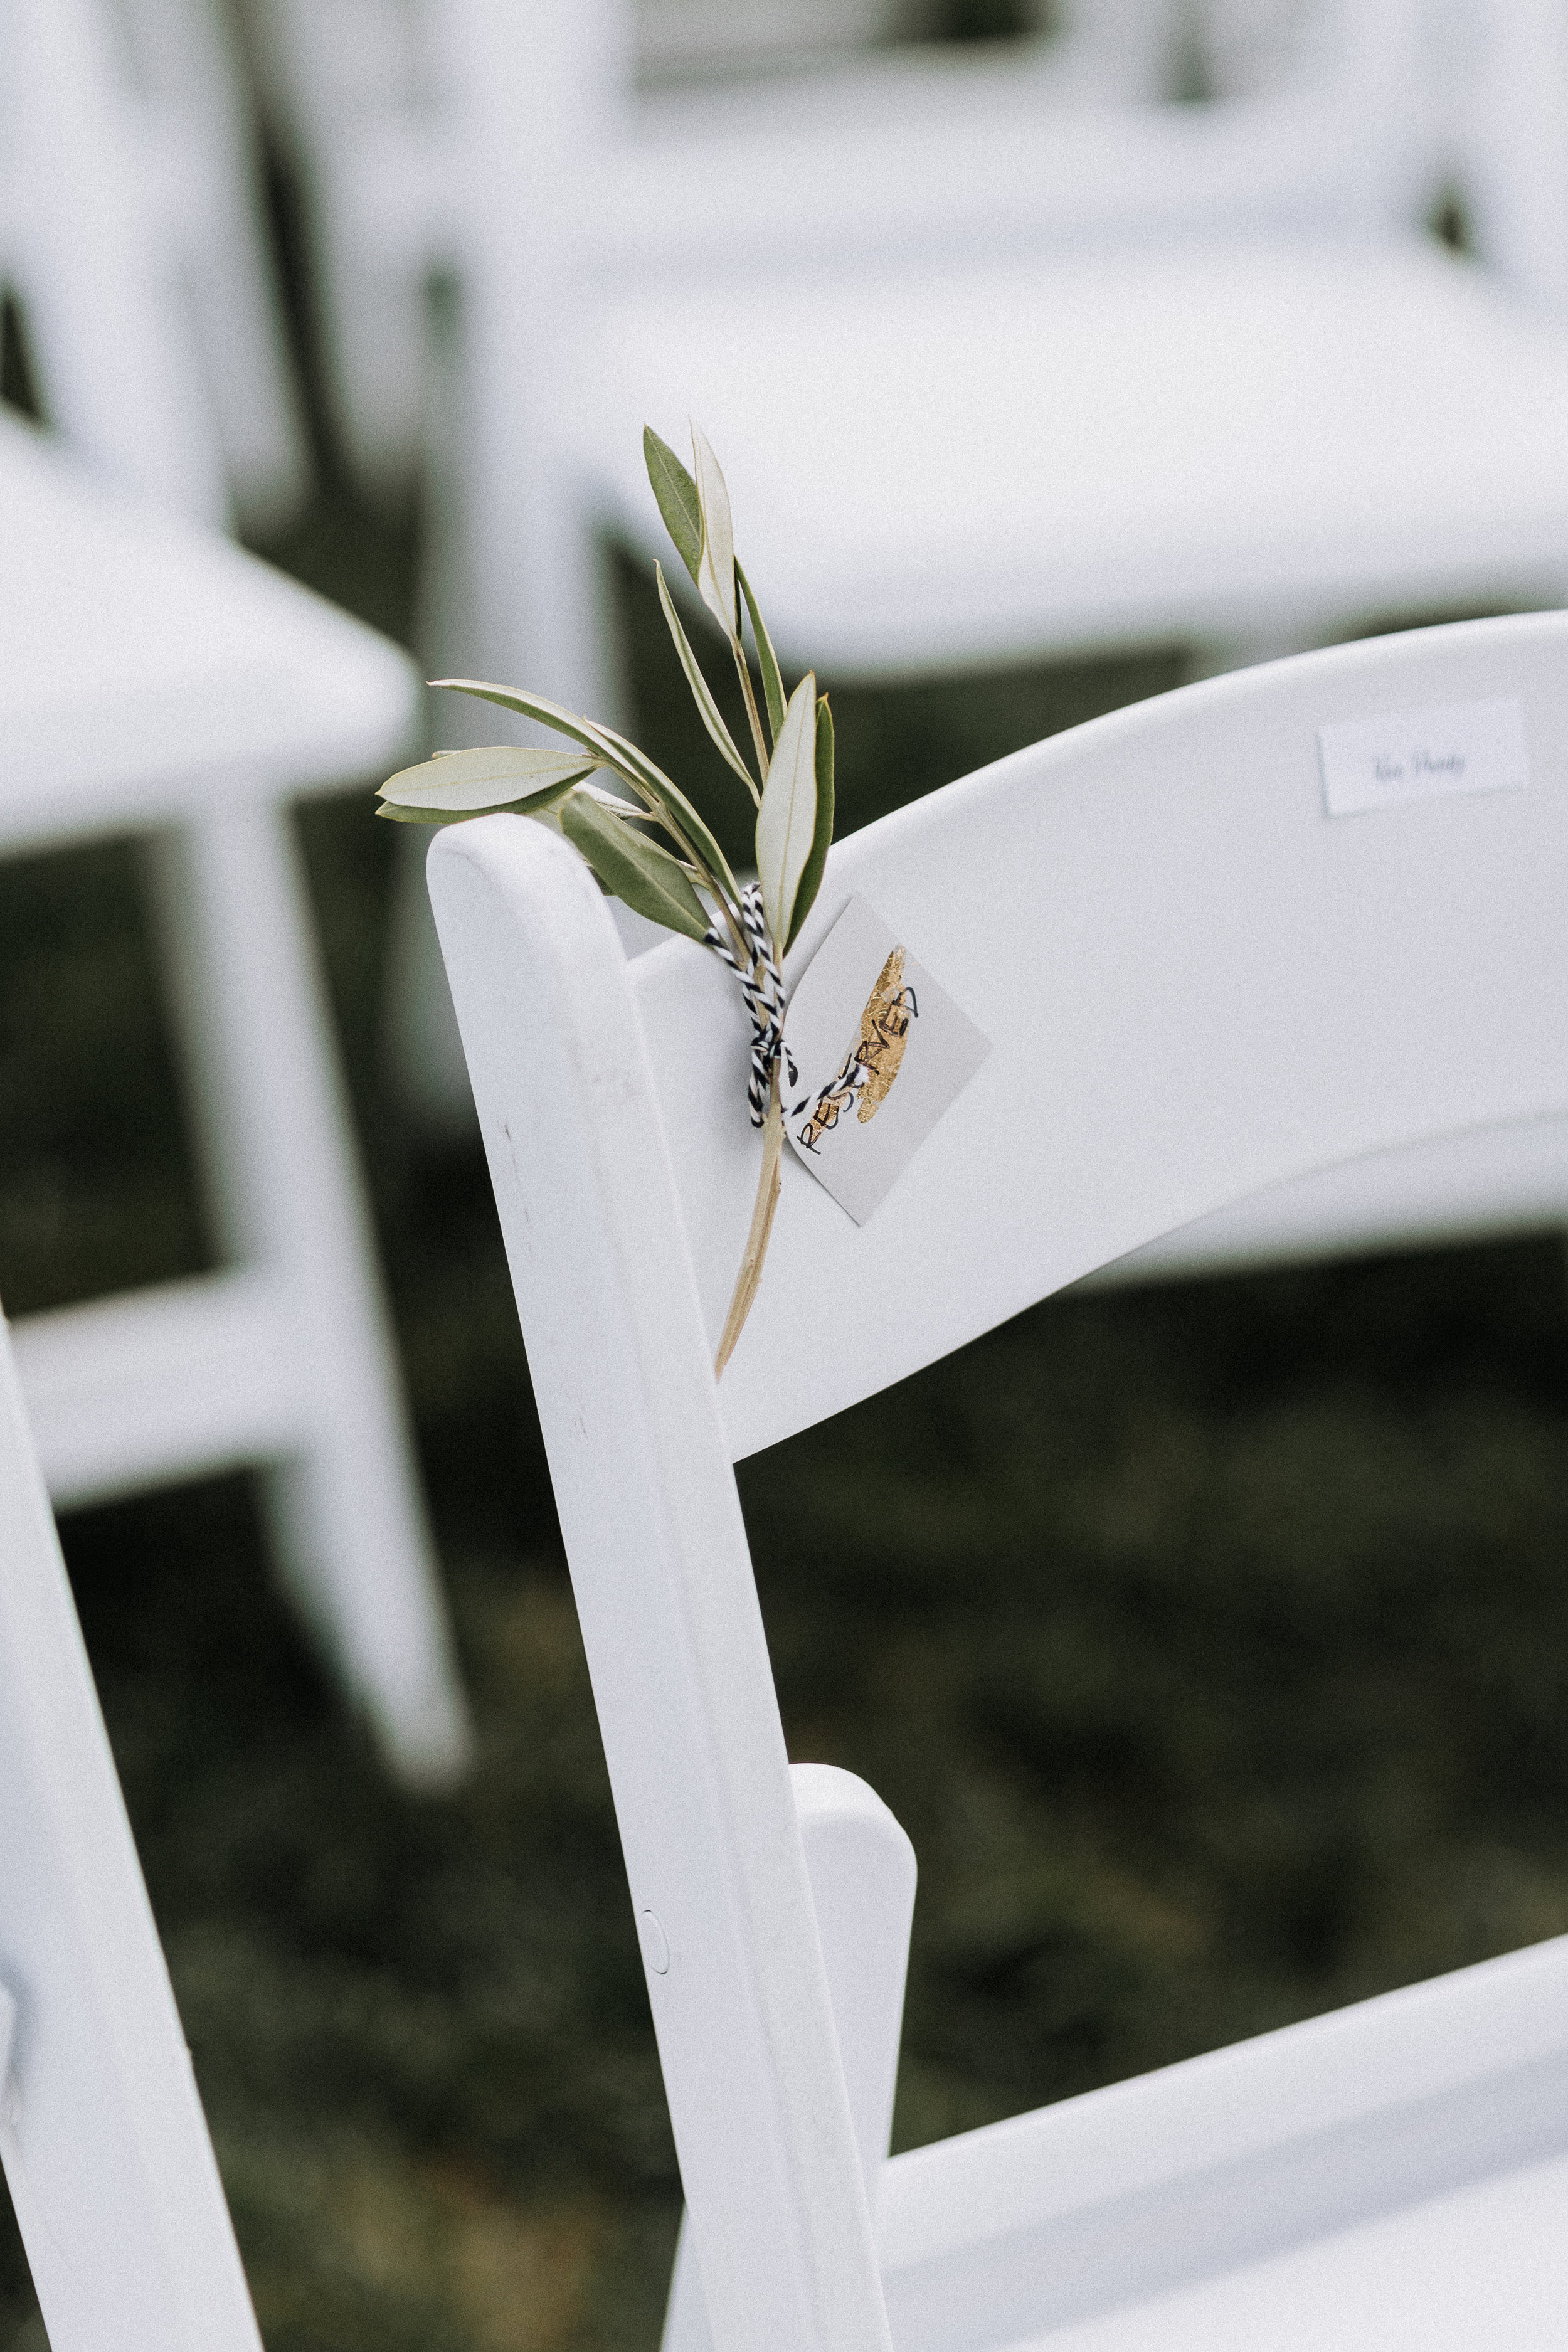 Saved Seat Wedding Reception Rosemary Sprig Reserved Oakland Museum of California Katie Laines design and coordination